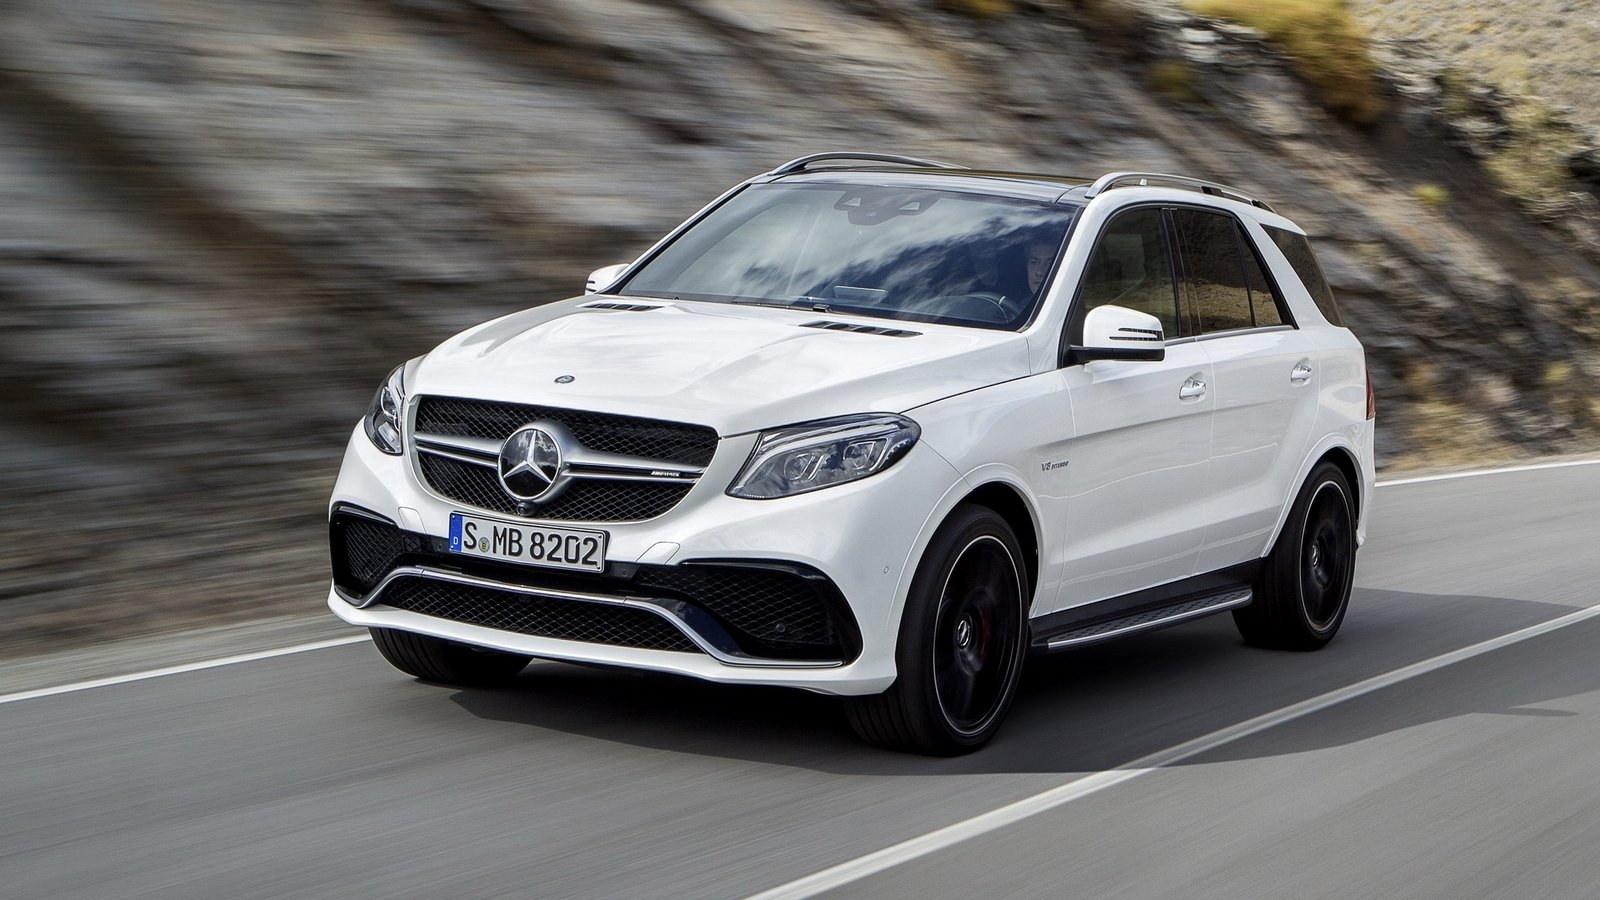 2016 mercedes amg gle63 review top speed. Black Bedroom Furniture Sets. Home Design Ideas